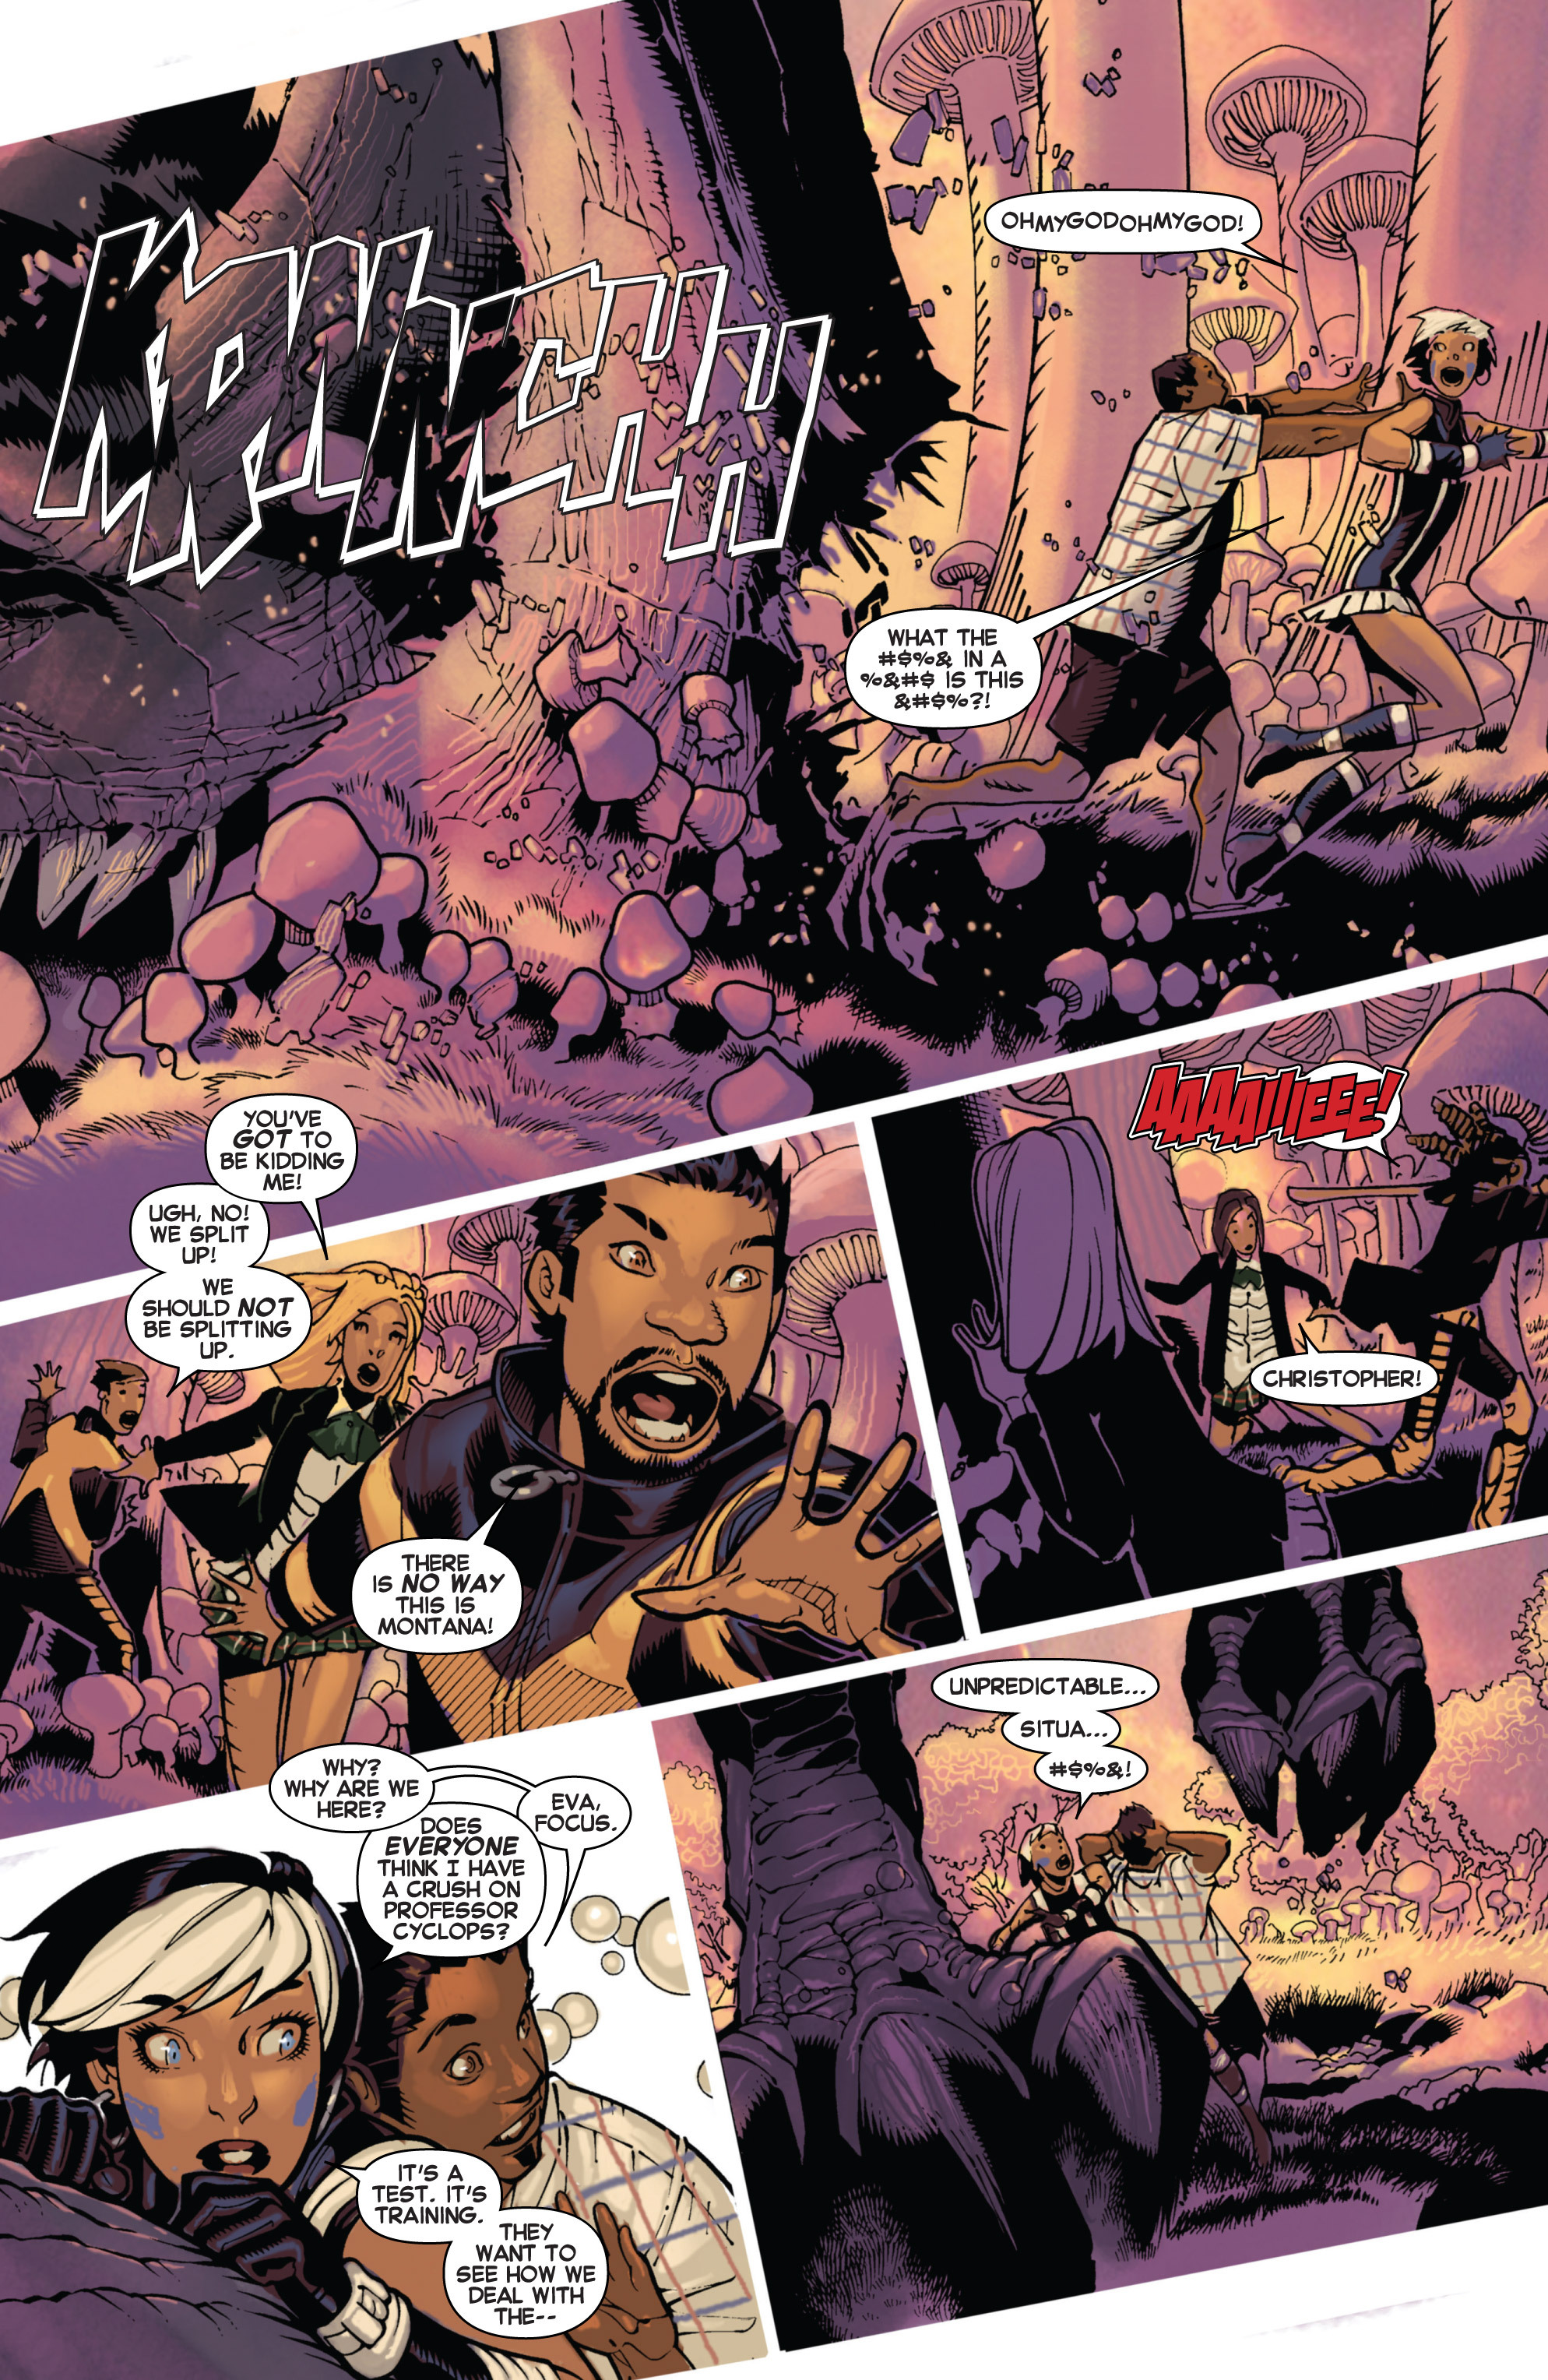 Read online Uncanny X-Men (2013) comic -  Issue # _TPB 3 - The Good, The Bad, The Inhuman - 71